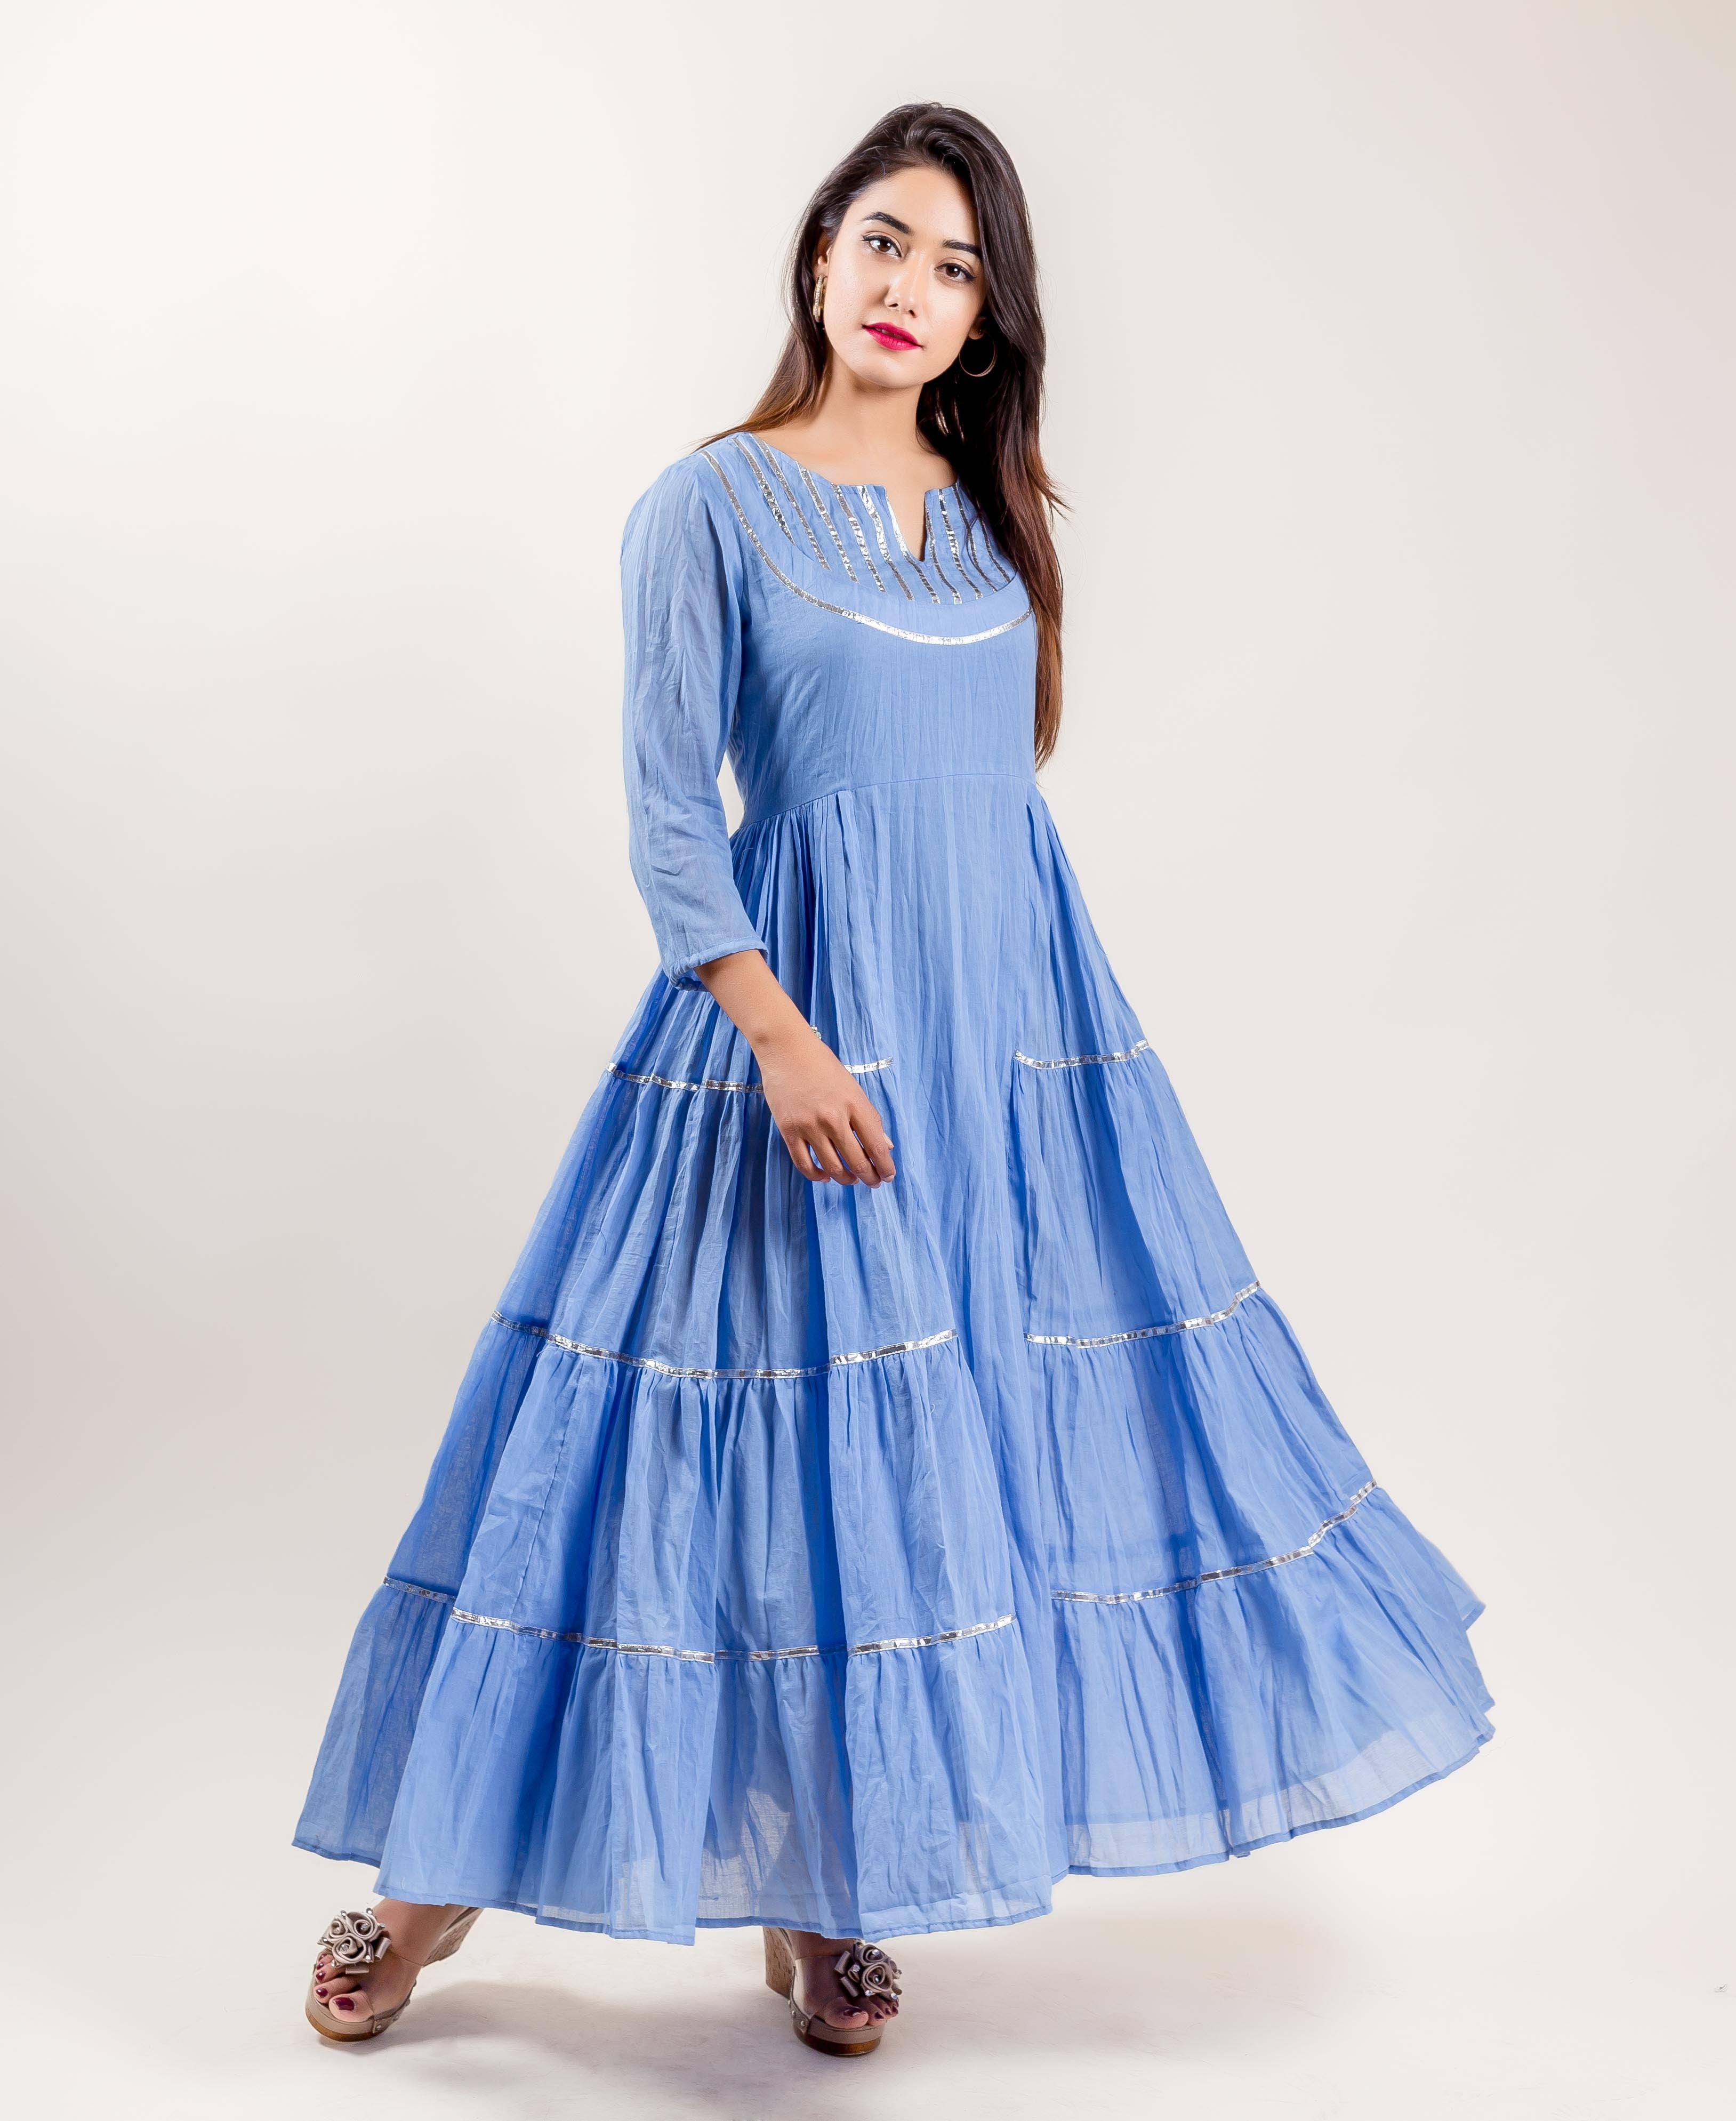 Blue Cotton Tiered Indo Western Style Gown Dresses for women online